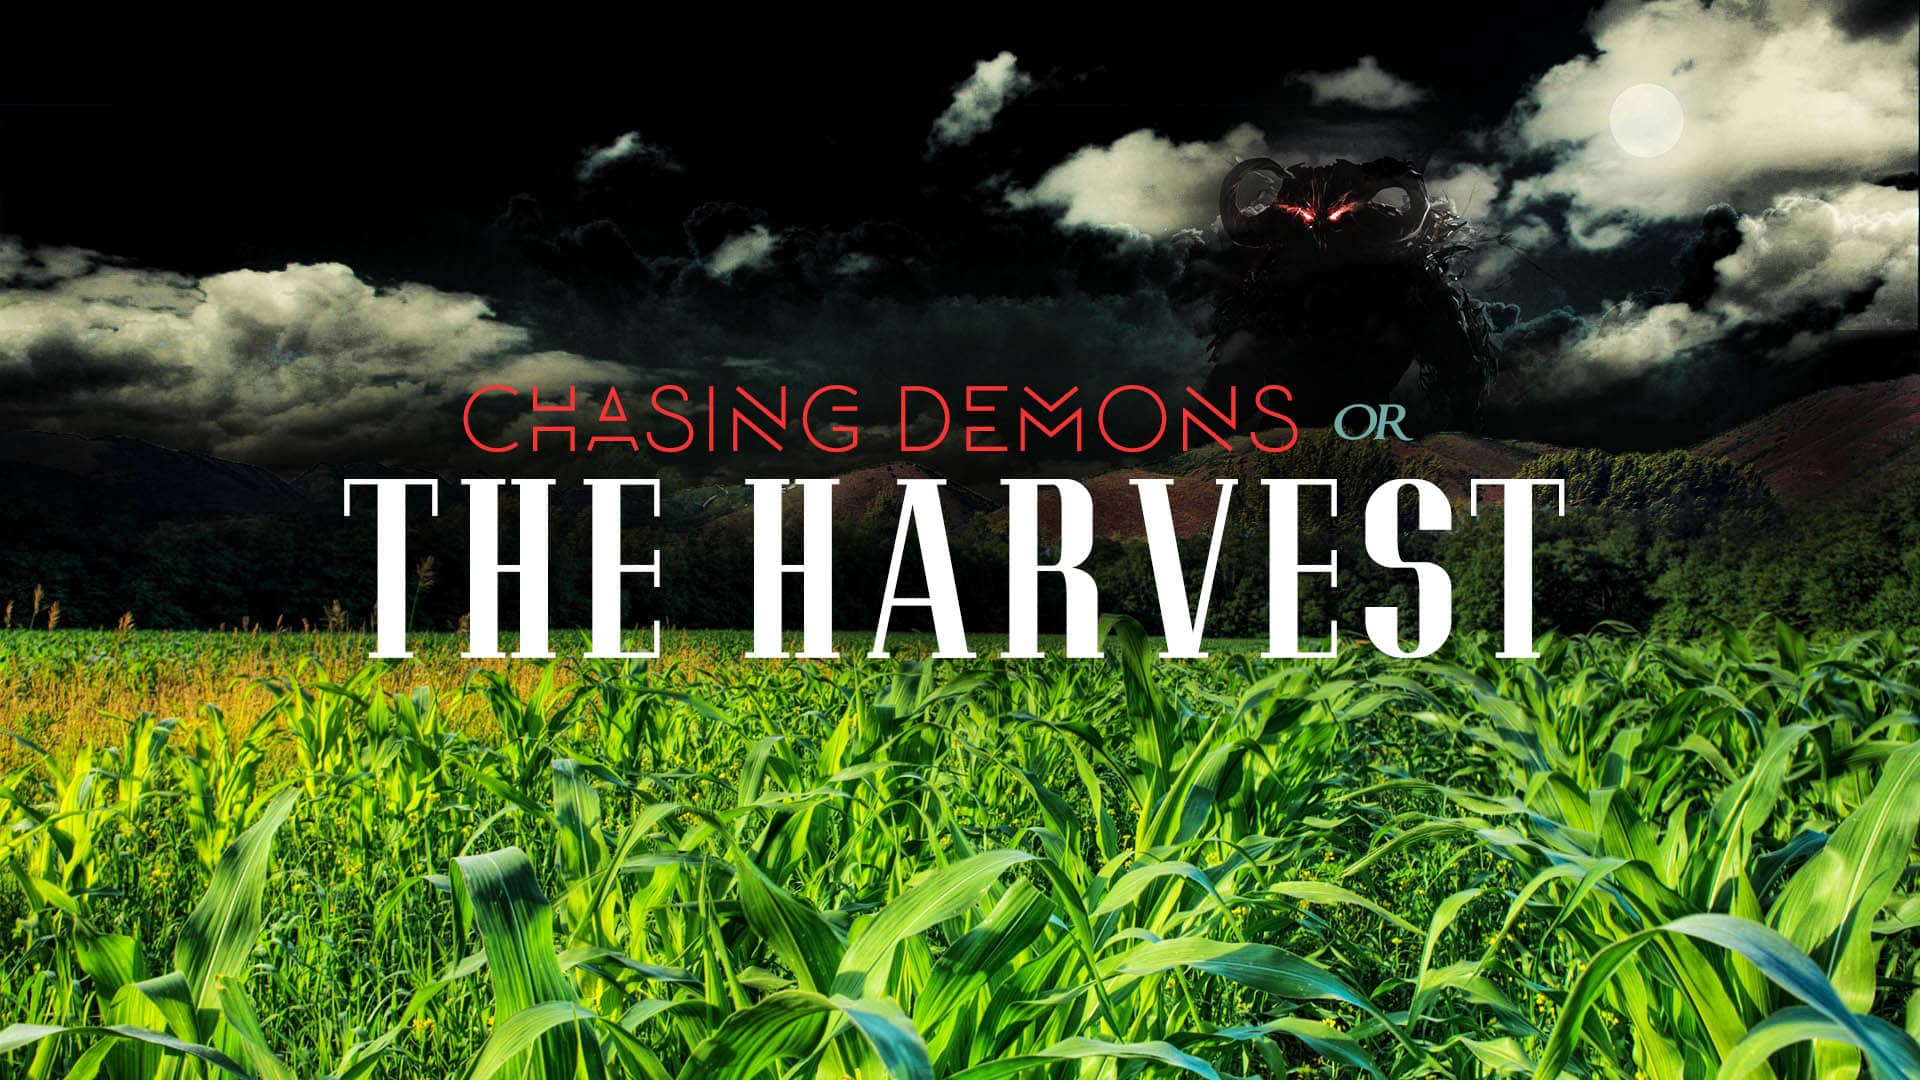 Chasing Demons or The Harvest